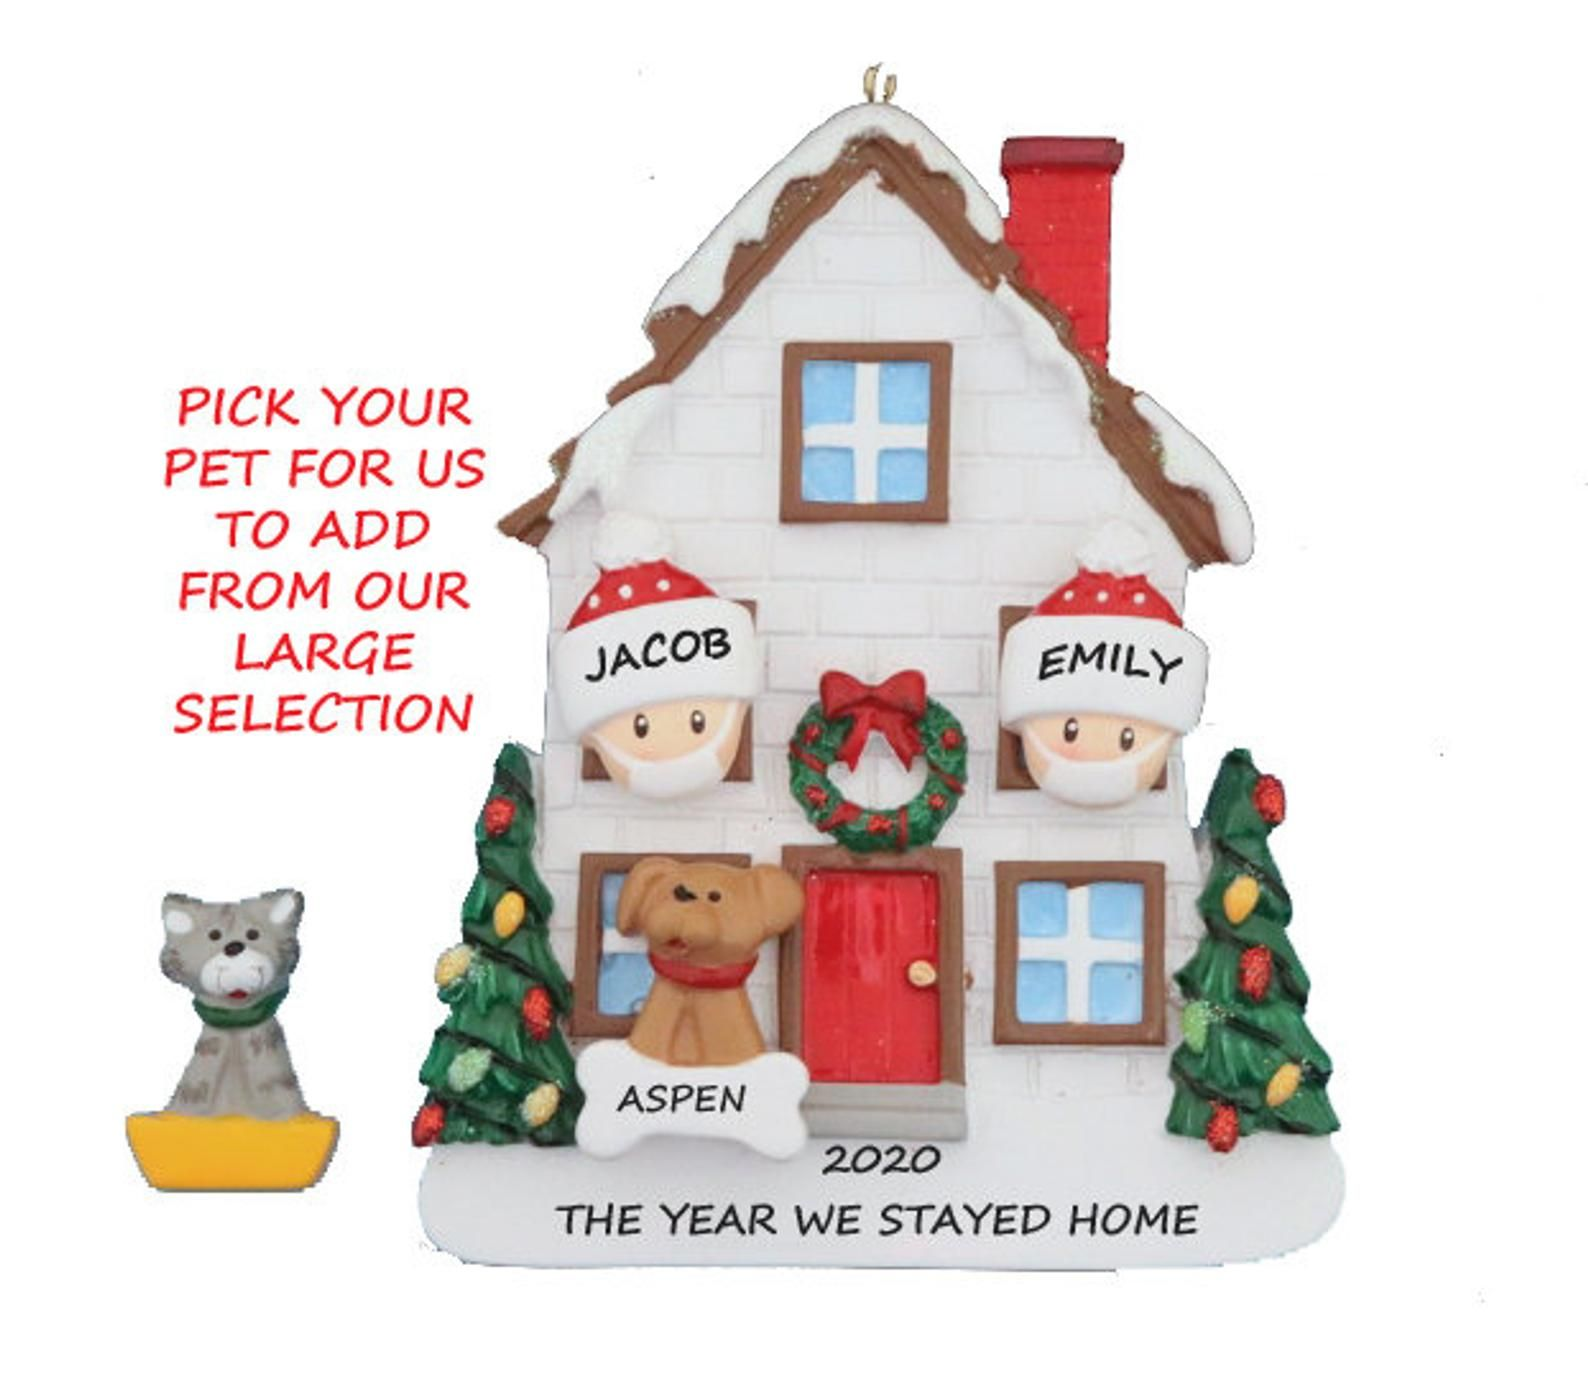 White House Christmas Decorations 2020 Funny -2019 Pin on Christmas